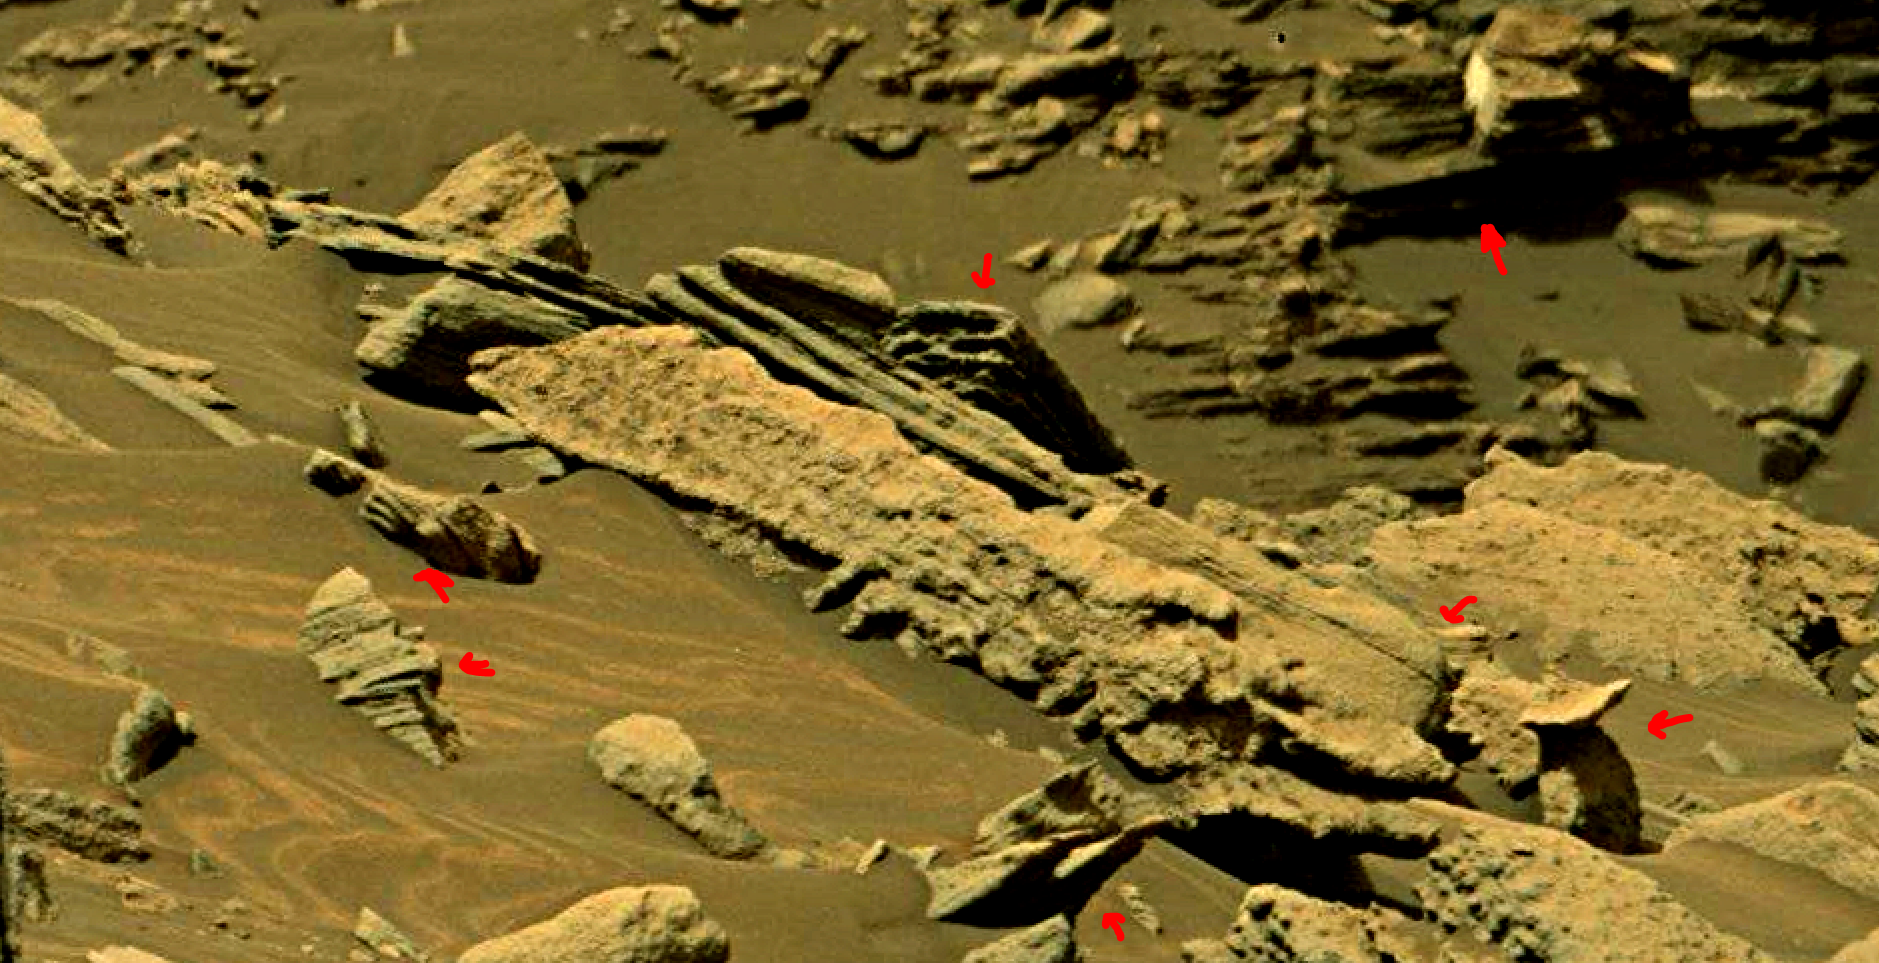 mars-sol-1467-anomaly-artifacts-12-was-life-on-mars